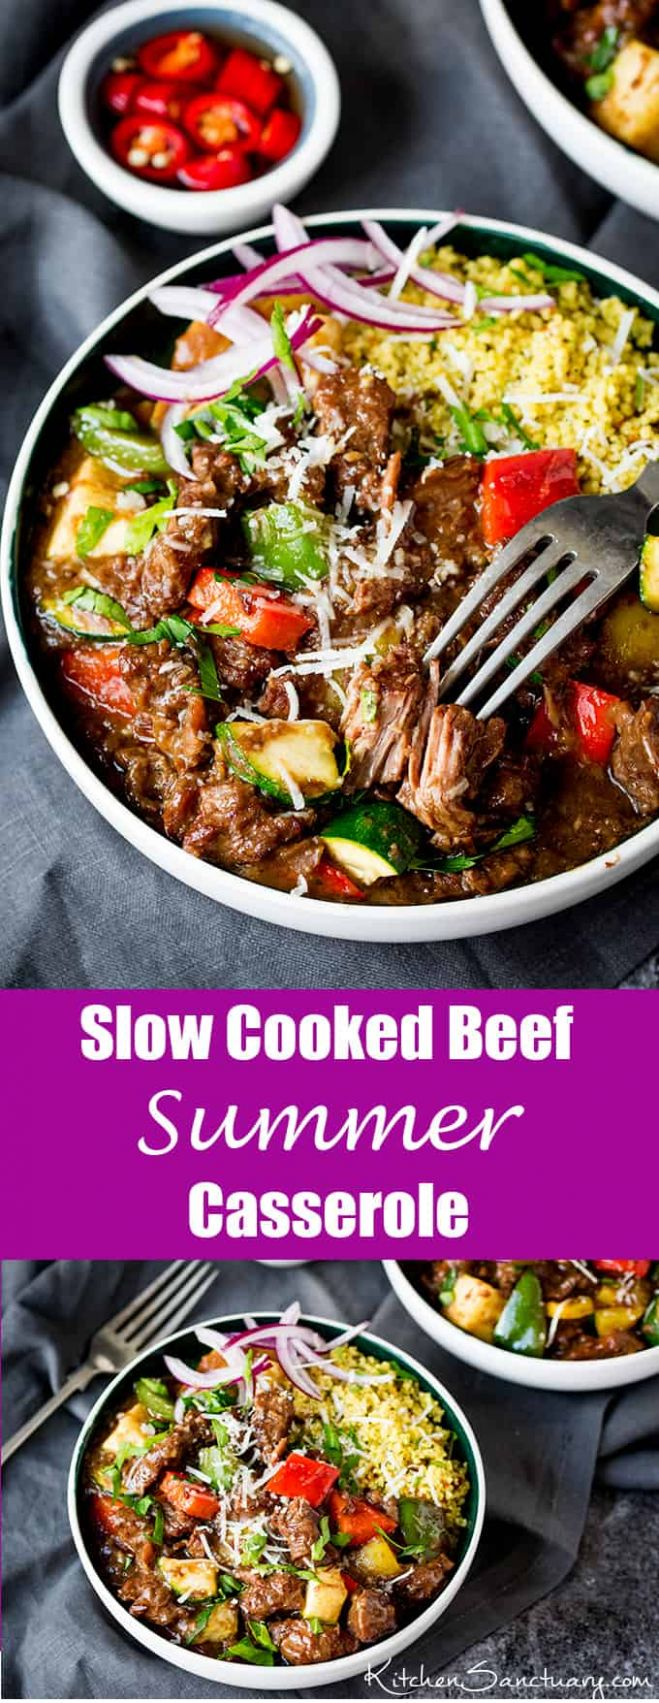 Slow Cooked SUMMER Beef Casserole - Summer Recipes Meat